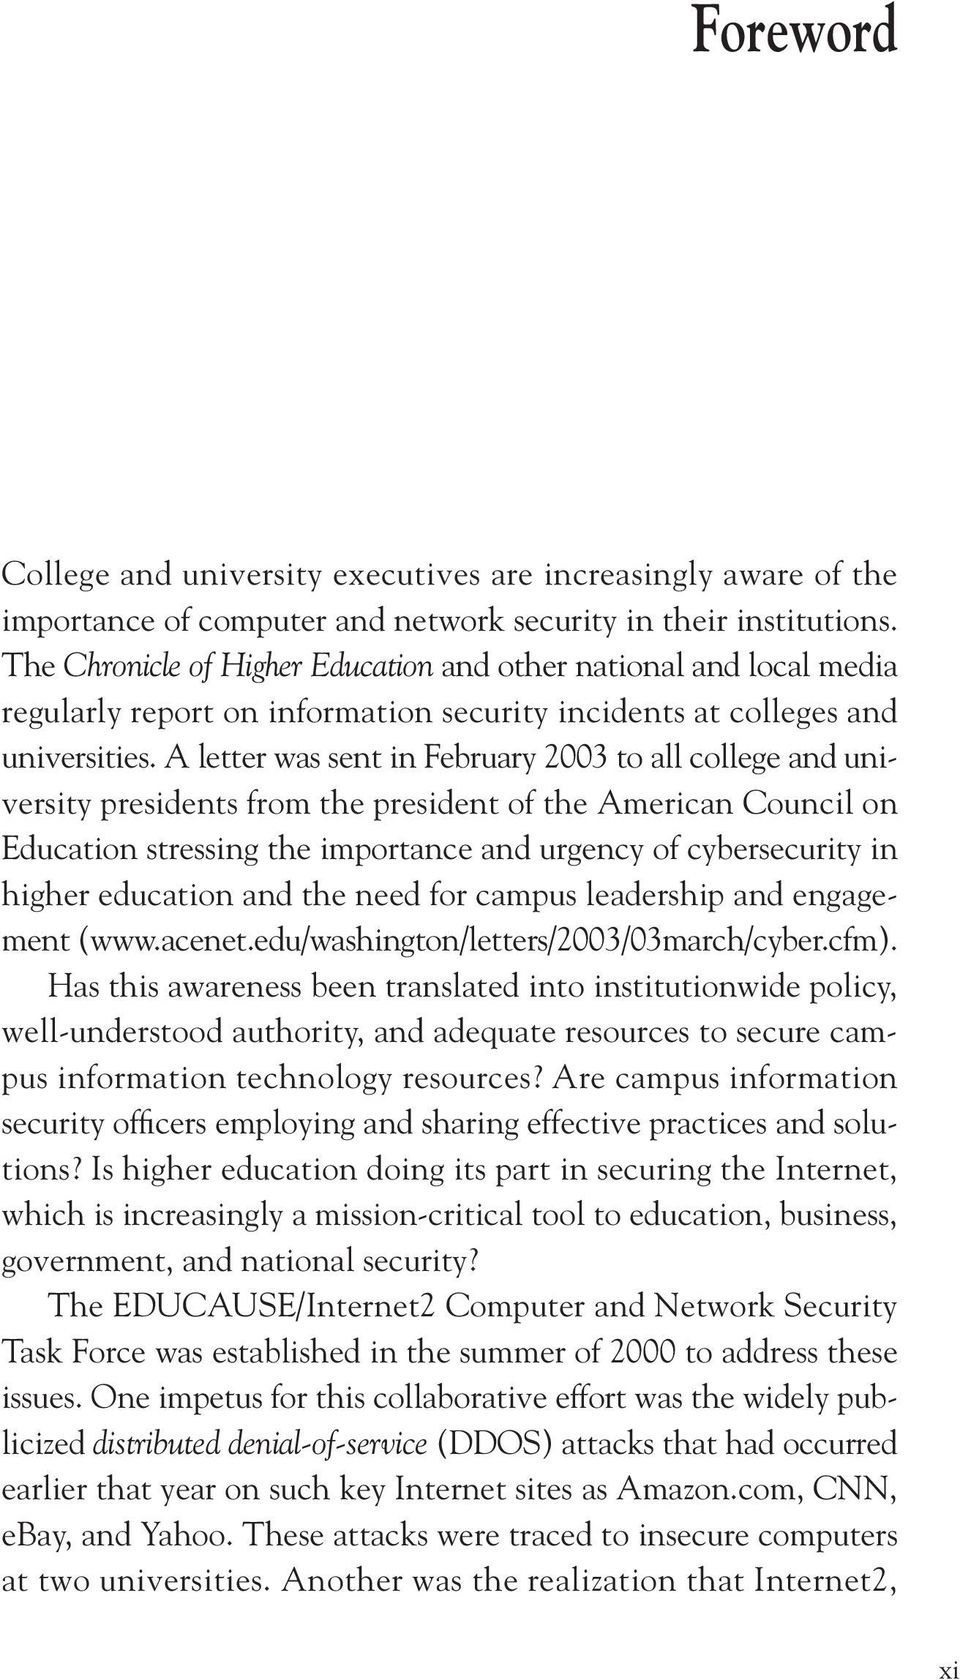 A letter was sent in February 2003 to all college and university presidents from the president of the American Council on Education stressing the importance and urgency of cybersecurity in higher